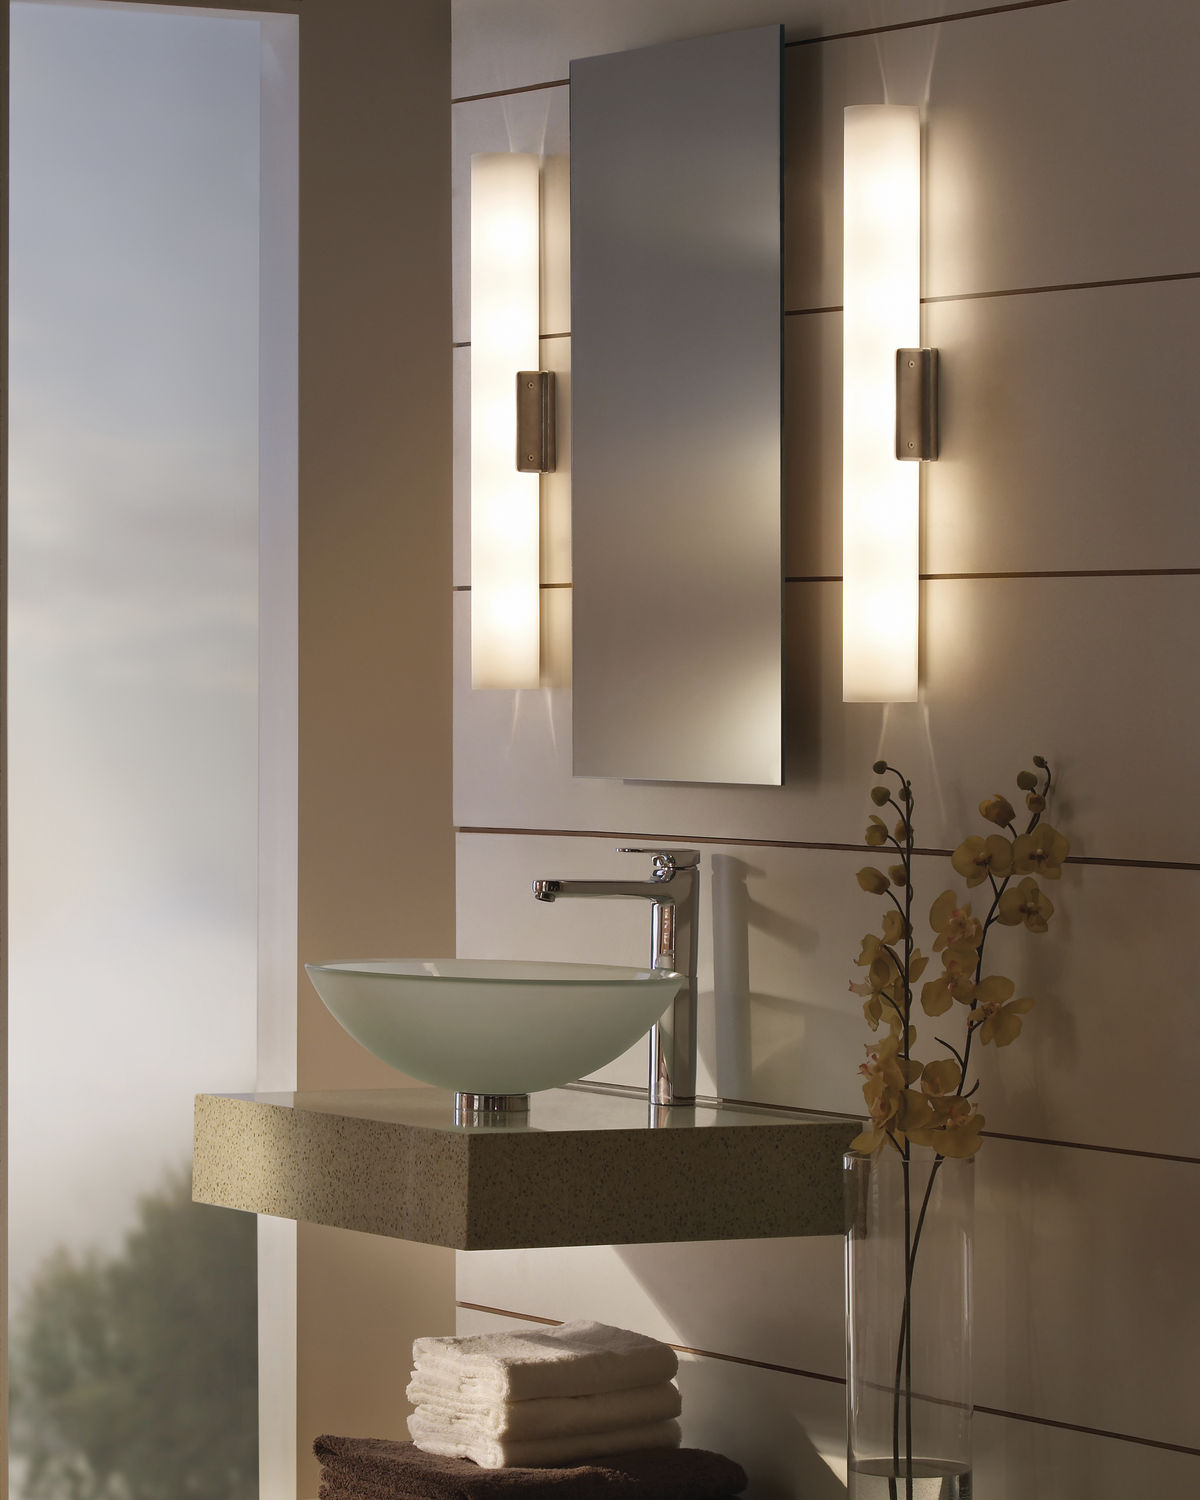 Contemporary Bathroom Wall Lights contemporary wall light / bathroom / glass / for mirrors - solace